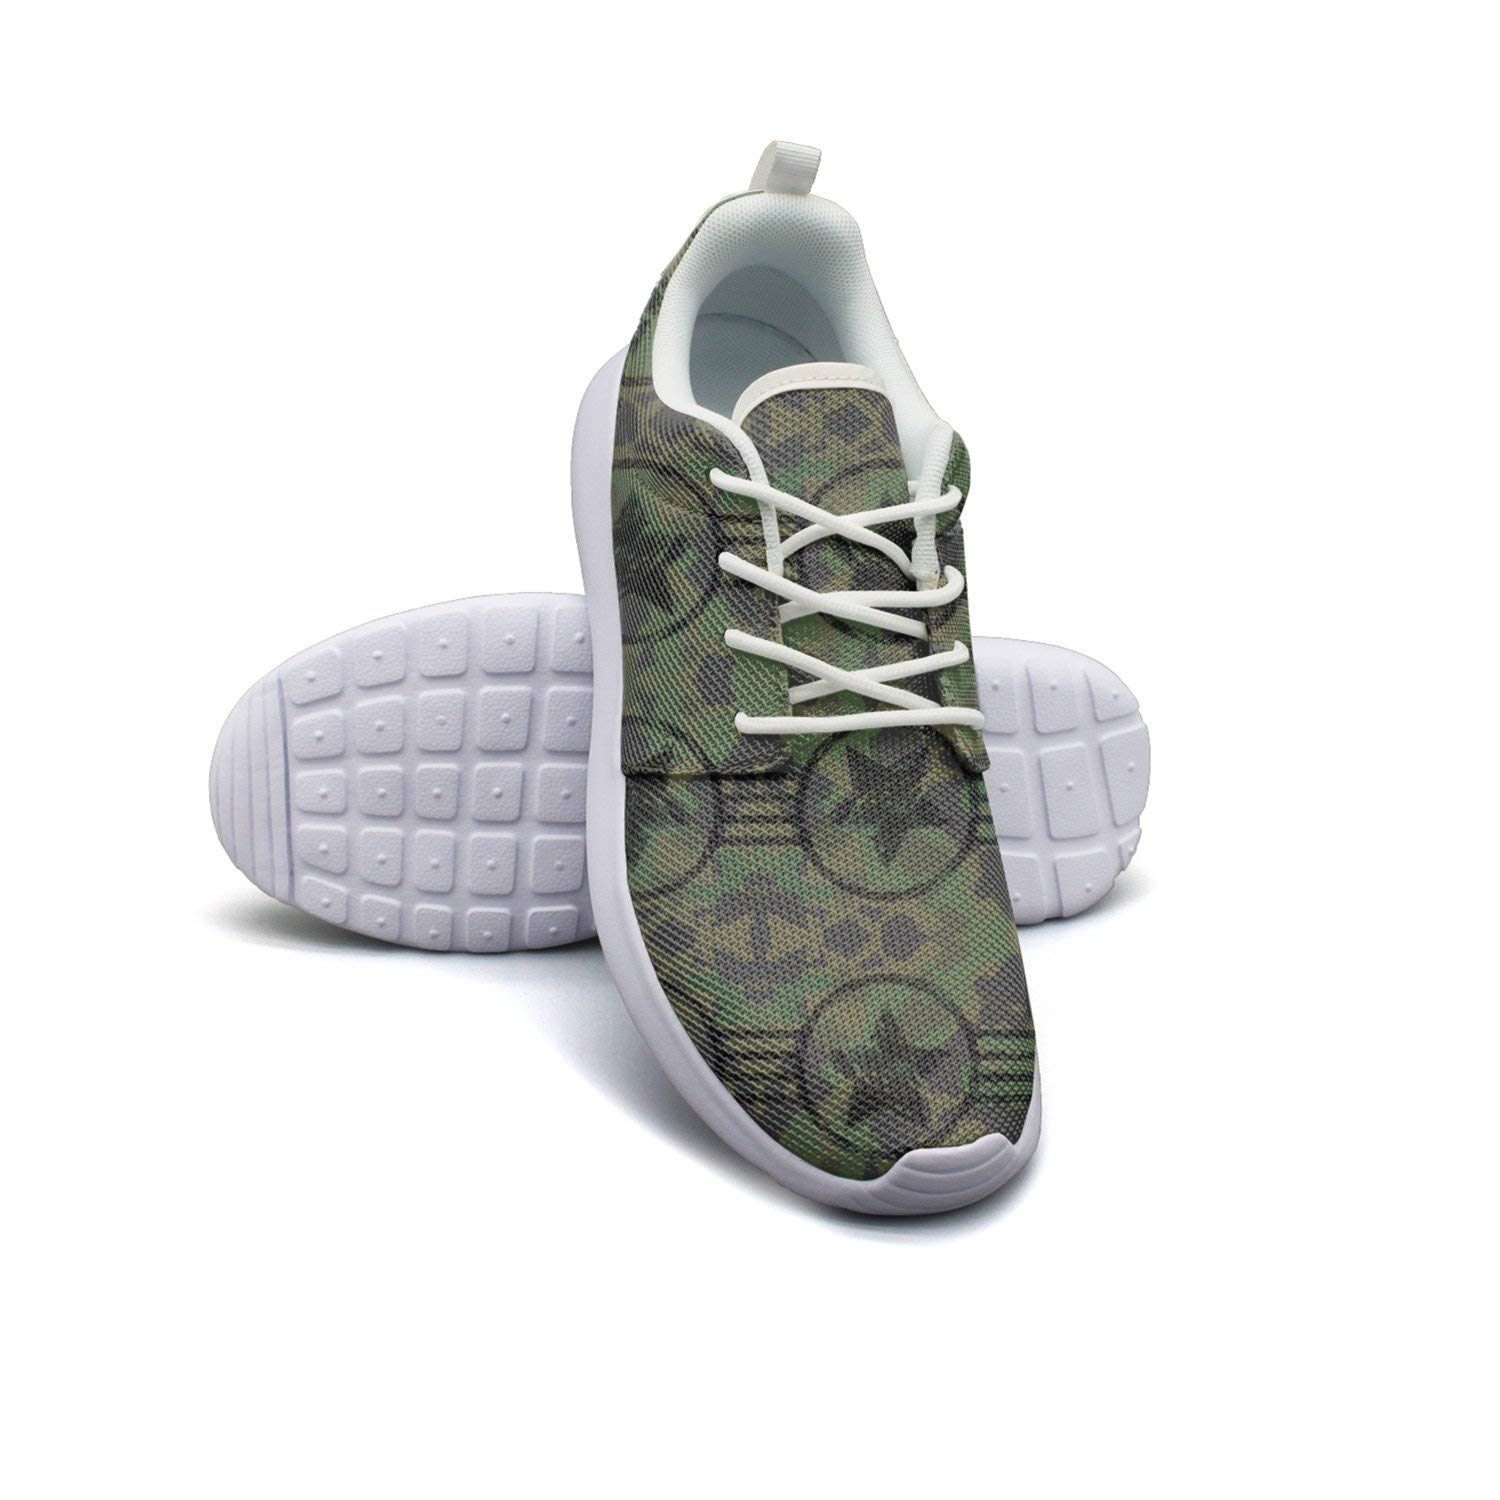 8d2b7bbe7f401 Get Quotations · ERSER Military American Camouflage Flag Breathable Running  Shoes Women